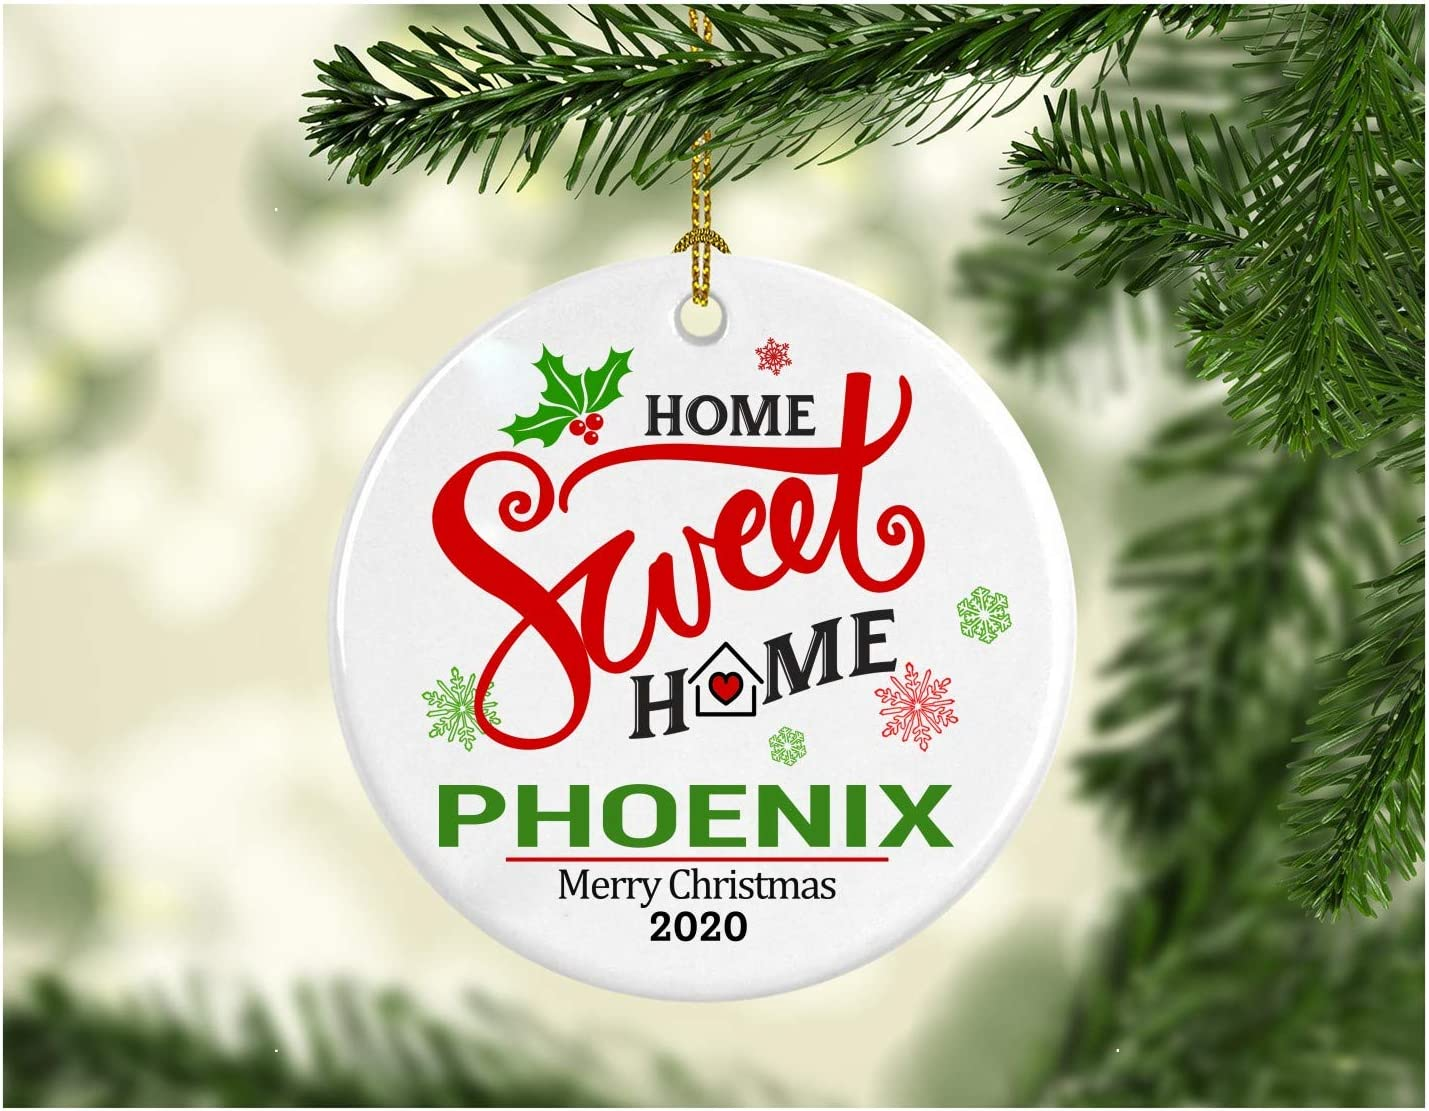 Christmas In Phoenix 2020 Amazon.com: Christmas Decoration Tree Ornament State   Home Sweet